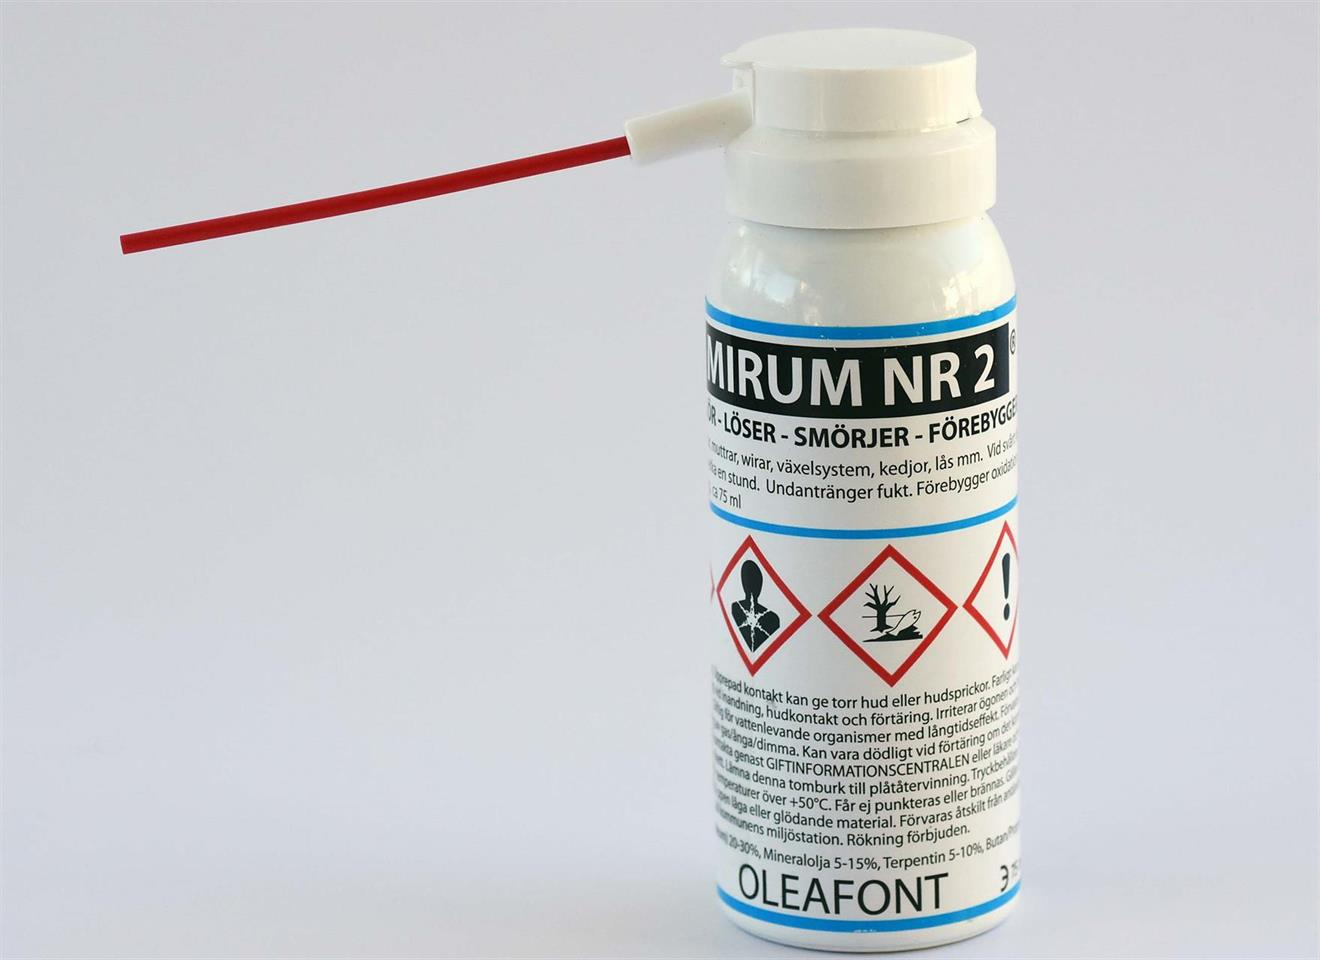 MIRUM NR 2 Spray 75ml